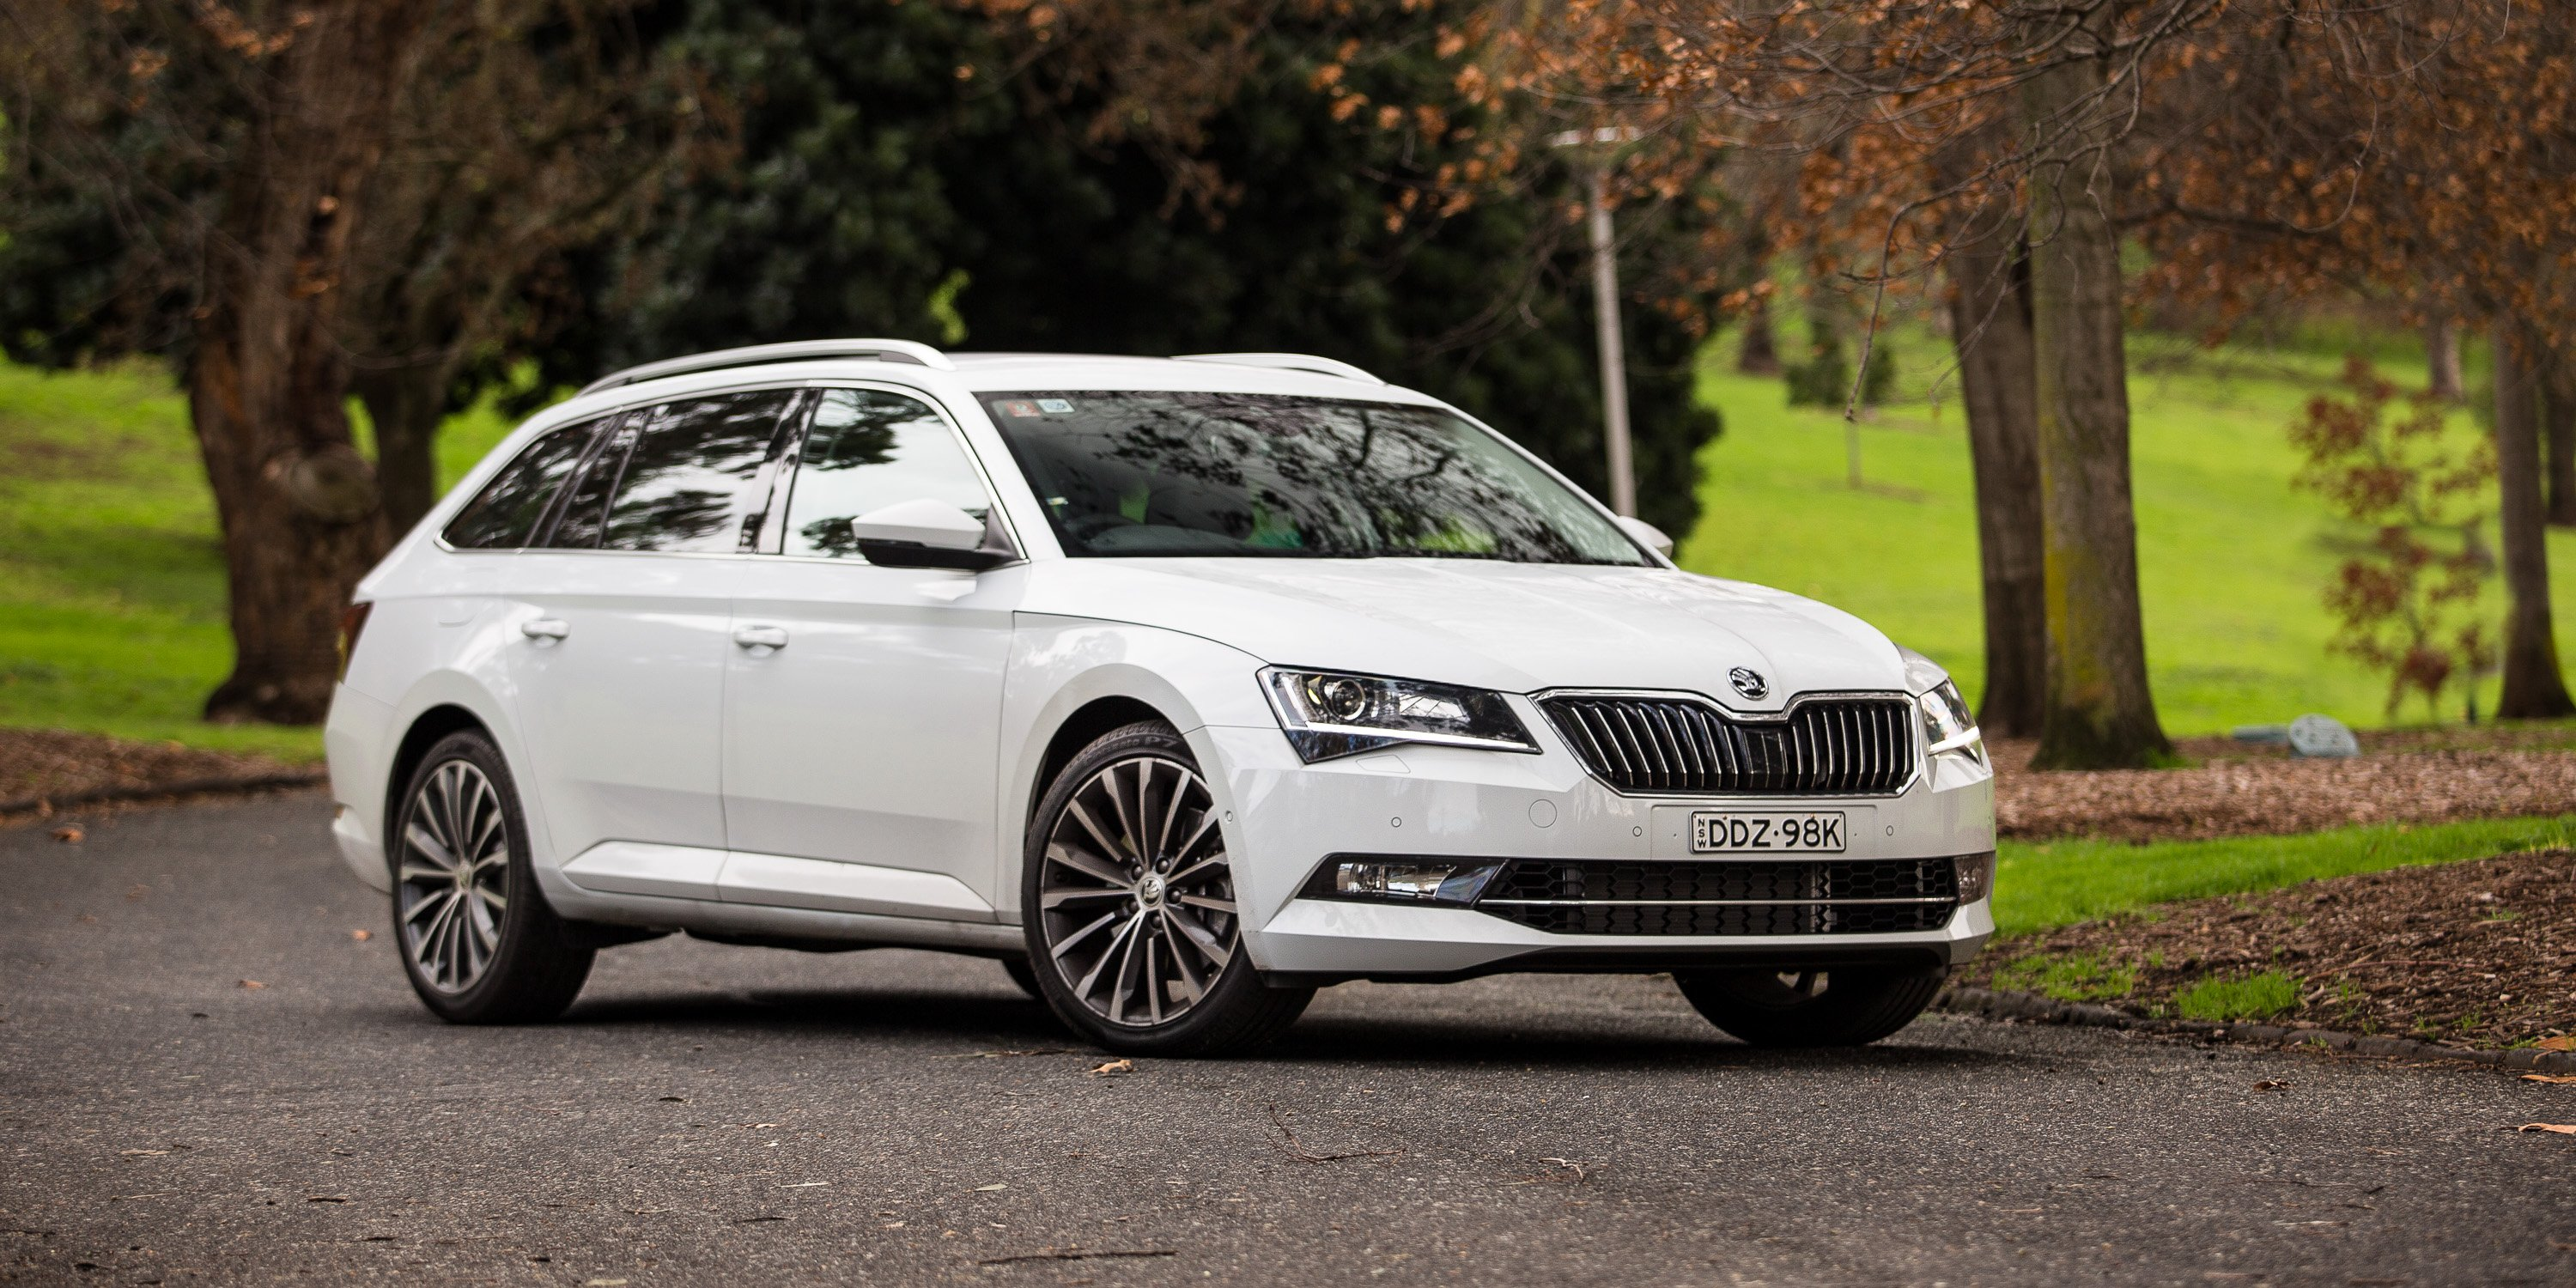 2016 skoda superb 206tsi wagon review long term report one caradvice. Black Bedroom Furniture Sets. Home Design Ideas